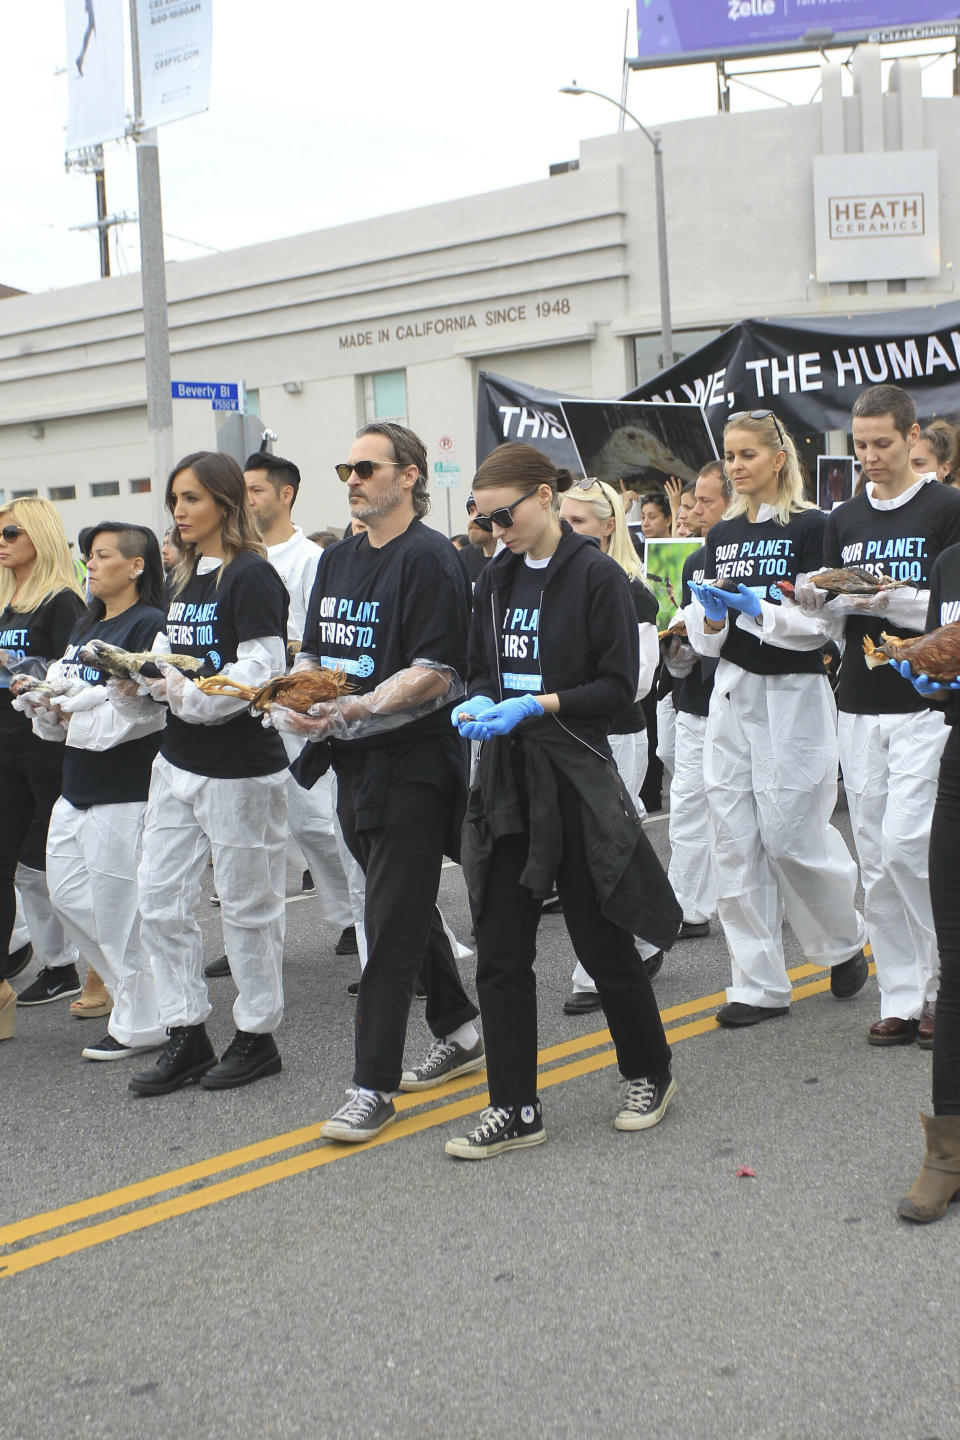 Photo by: gotpap/STAR MAX/IPx 2019 6/2/19 Joaquin Phoenix and Rooney Mara at The National Animal Rights Day Demostration in Los Angeles, CA.